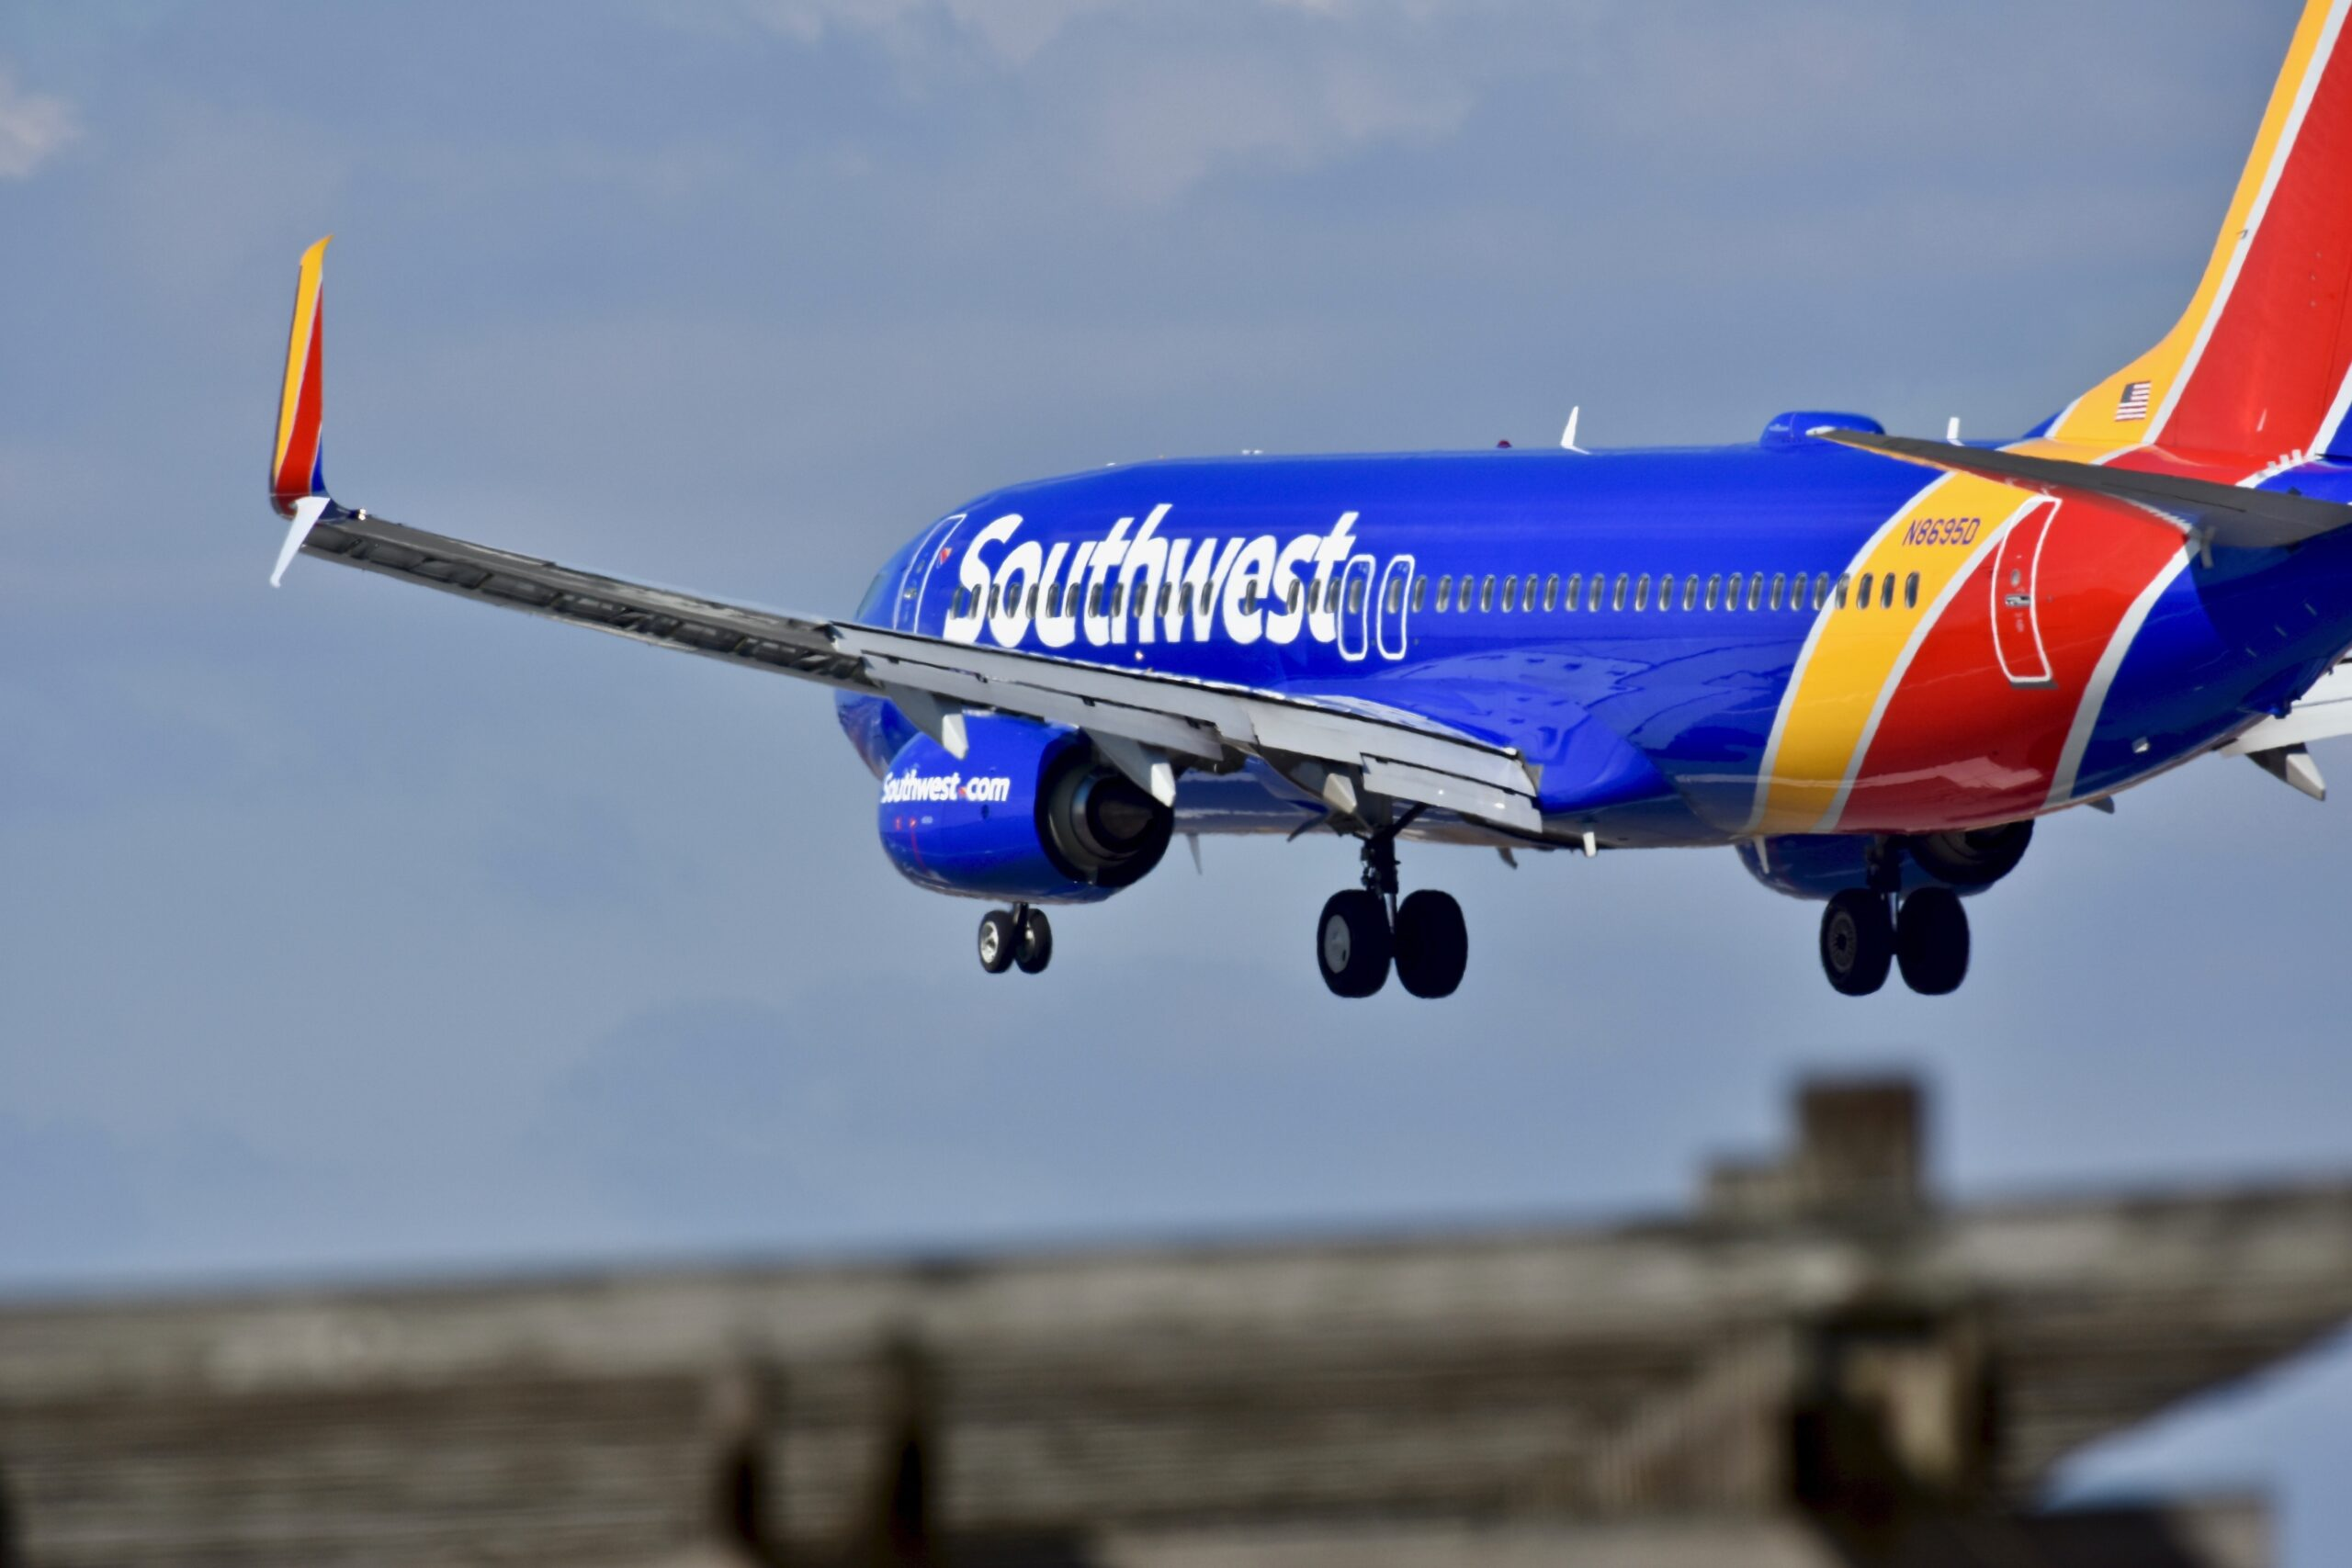 This is a second recent incident involving a disabled child and Southwest, according to a Colorado mother on Fox news, who says kicked her family off a different flight over fears her three-year-old son 'might' remove his mask due to a sensory processing disorder.